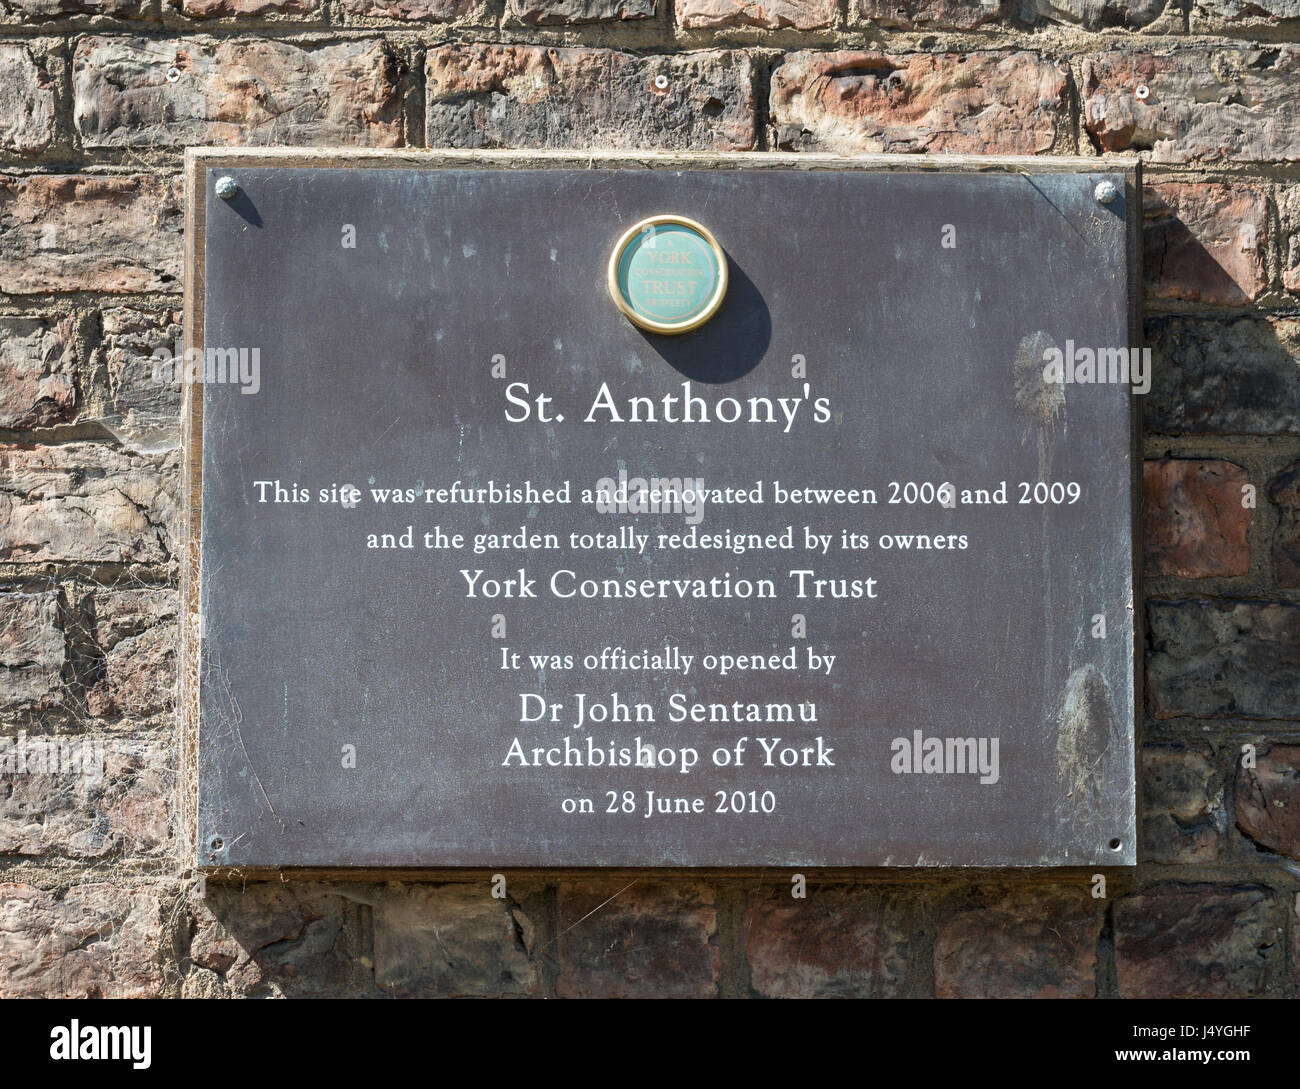 Plaque at St. Anthony's Garden, Peasholme Green, York, North Yorkshire, England, UK - Stock Image